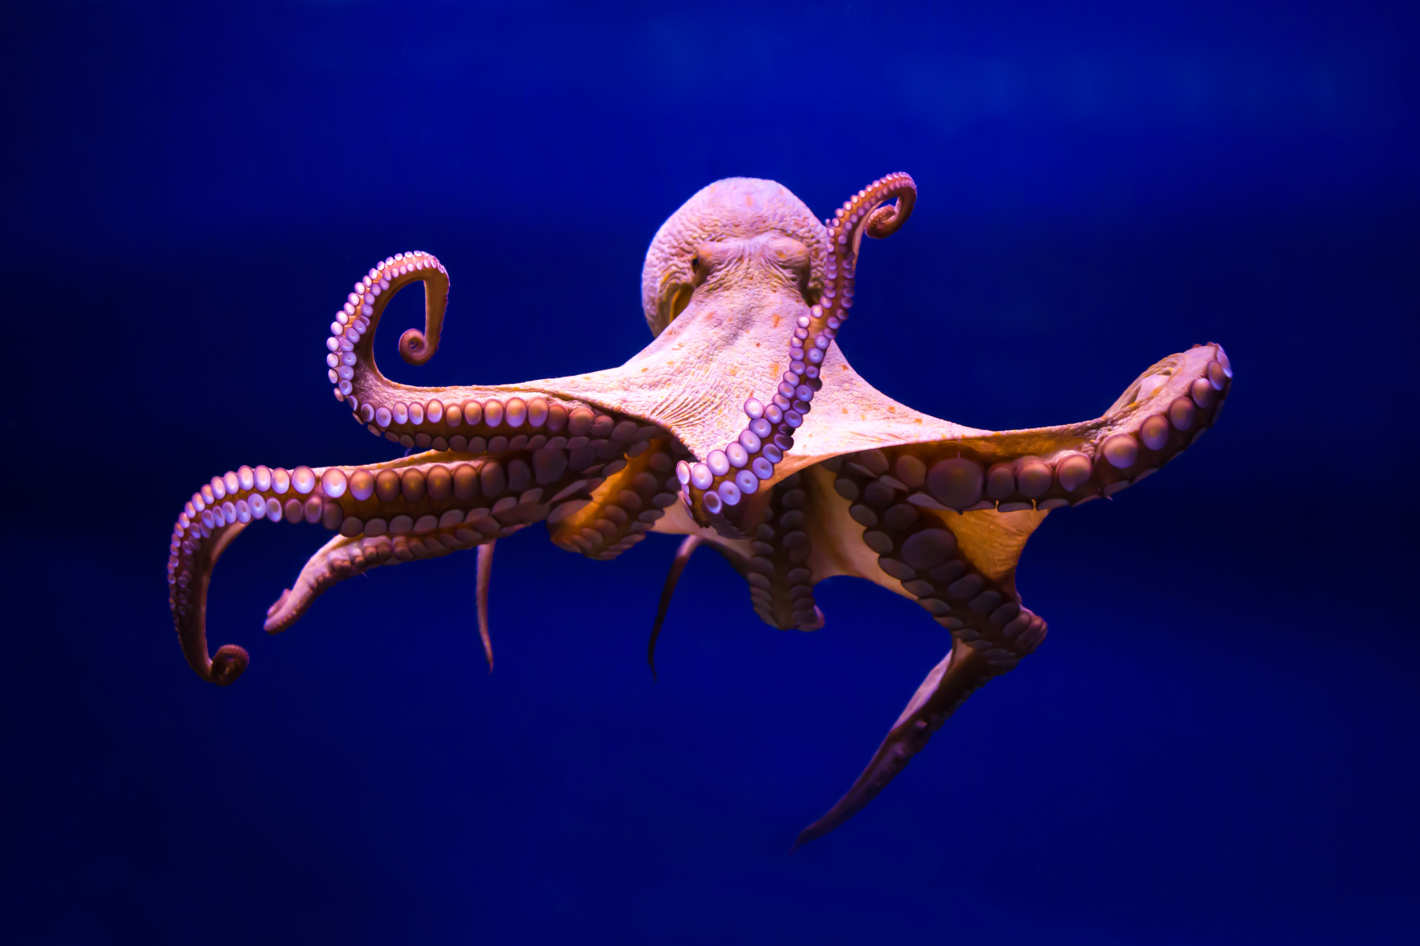 Octopus Backgrounds on Wallpapers Vista